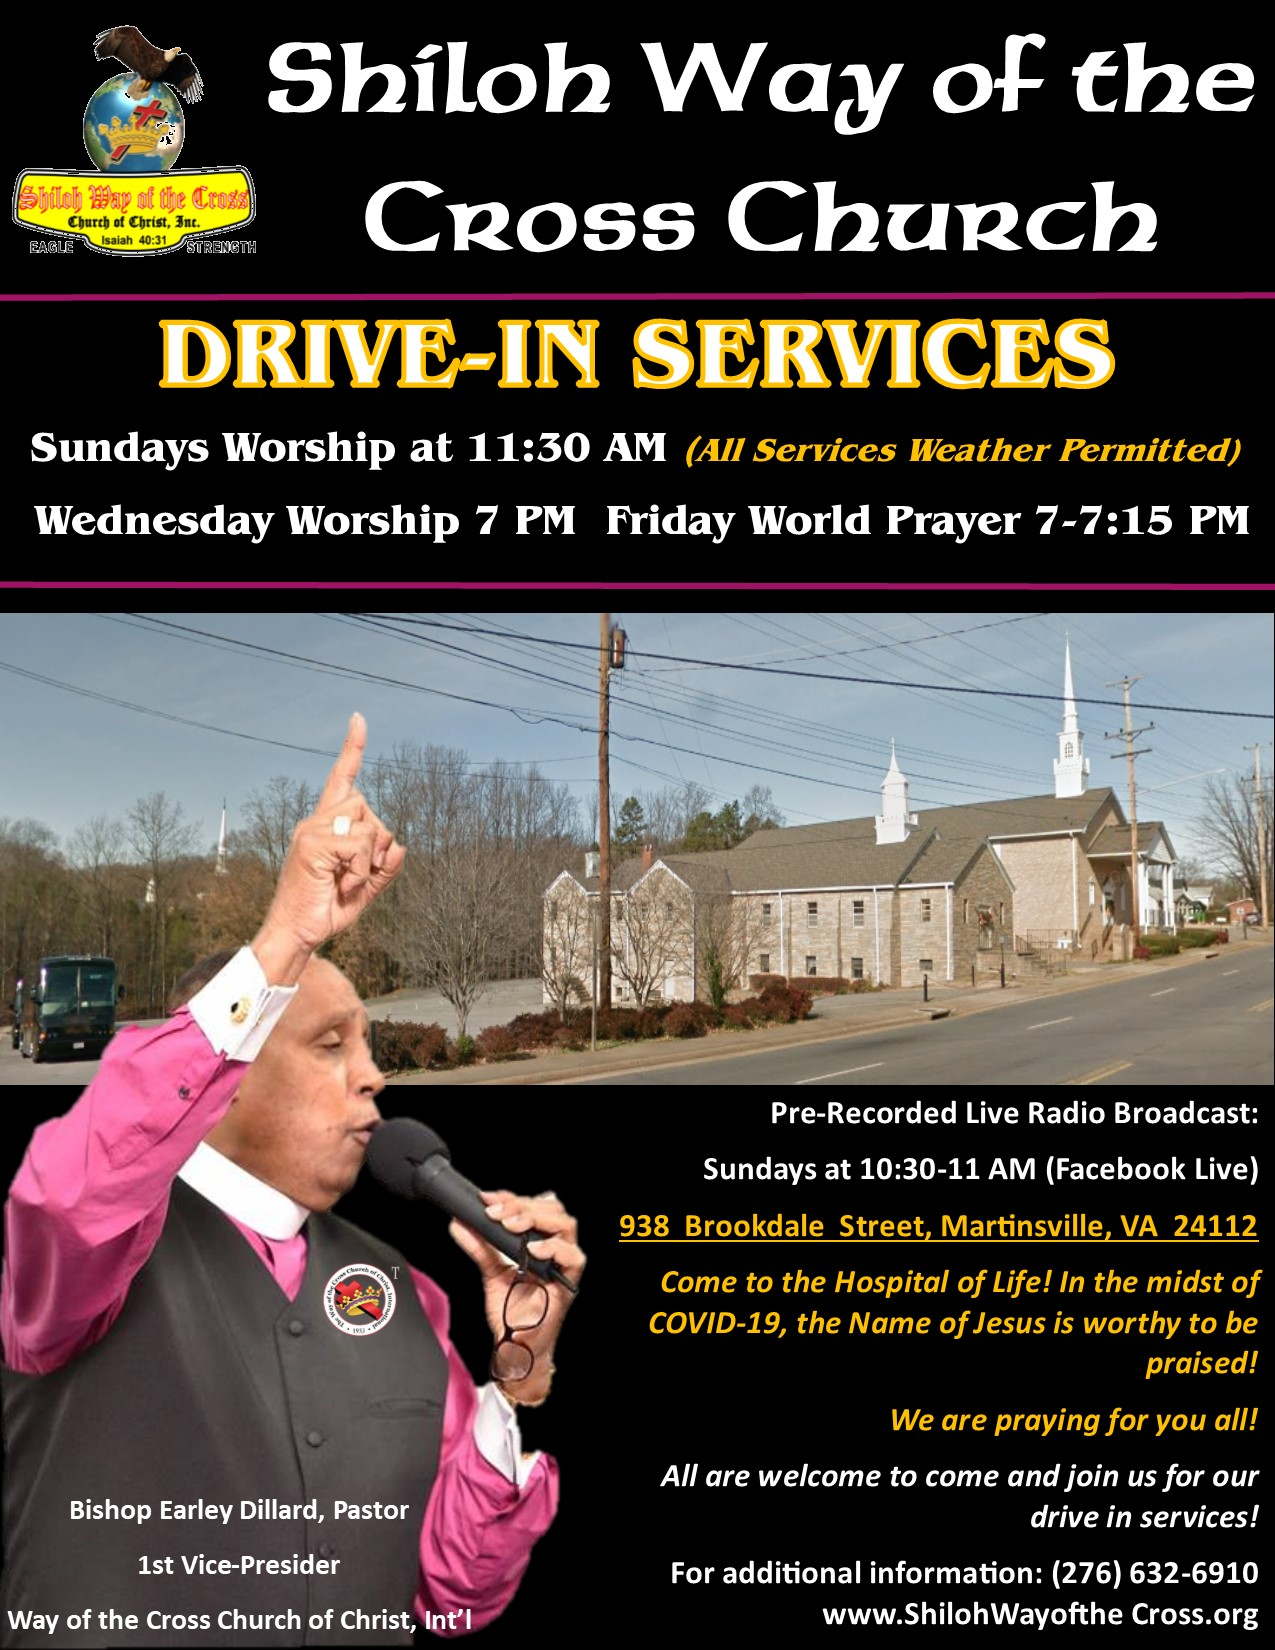 Shiloh-Way-of-the-Cross-Church-COVID-19-Drive-in-Service-Flyer-2